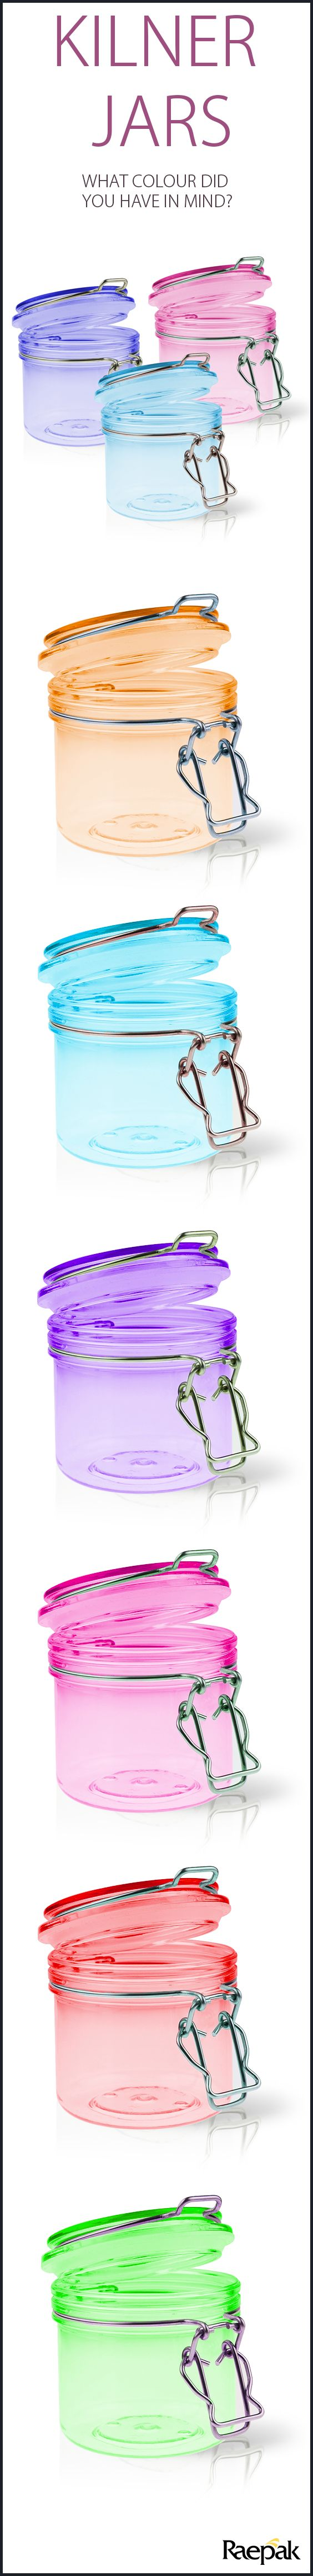 Discover Kilner jars like never before. #kilner #colour #kitchen #storage #PlasticPackaging #jars